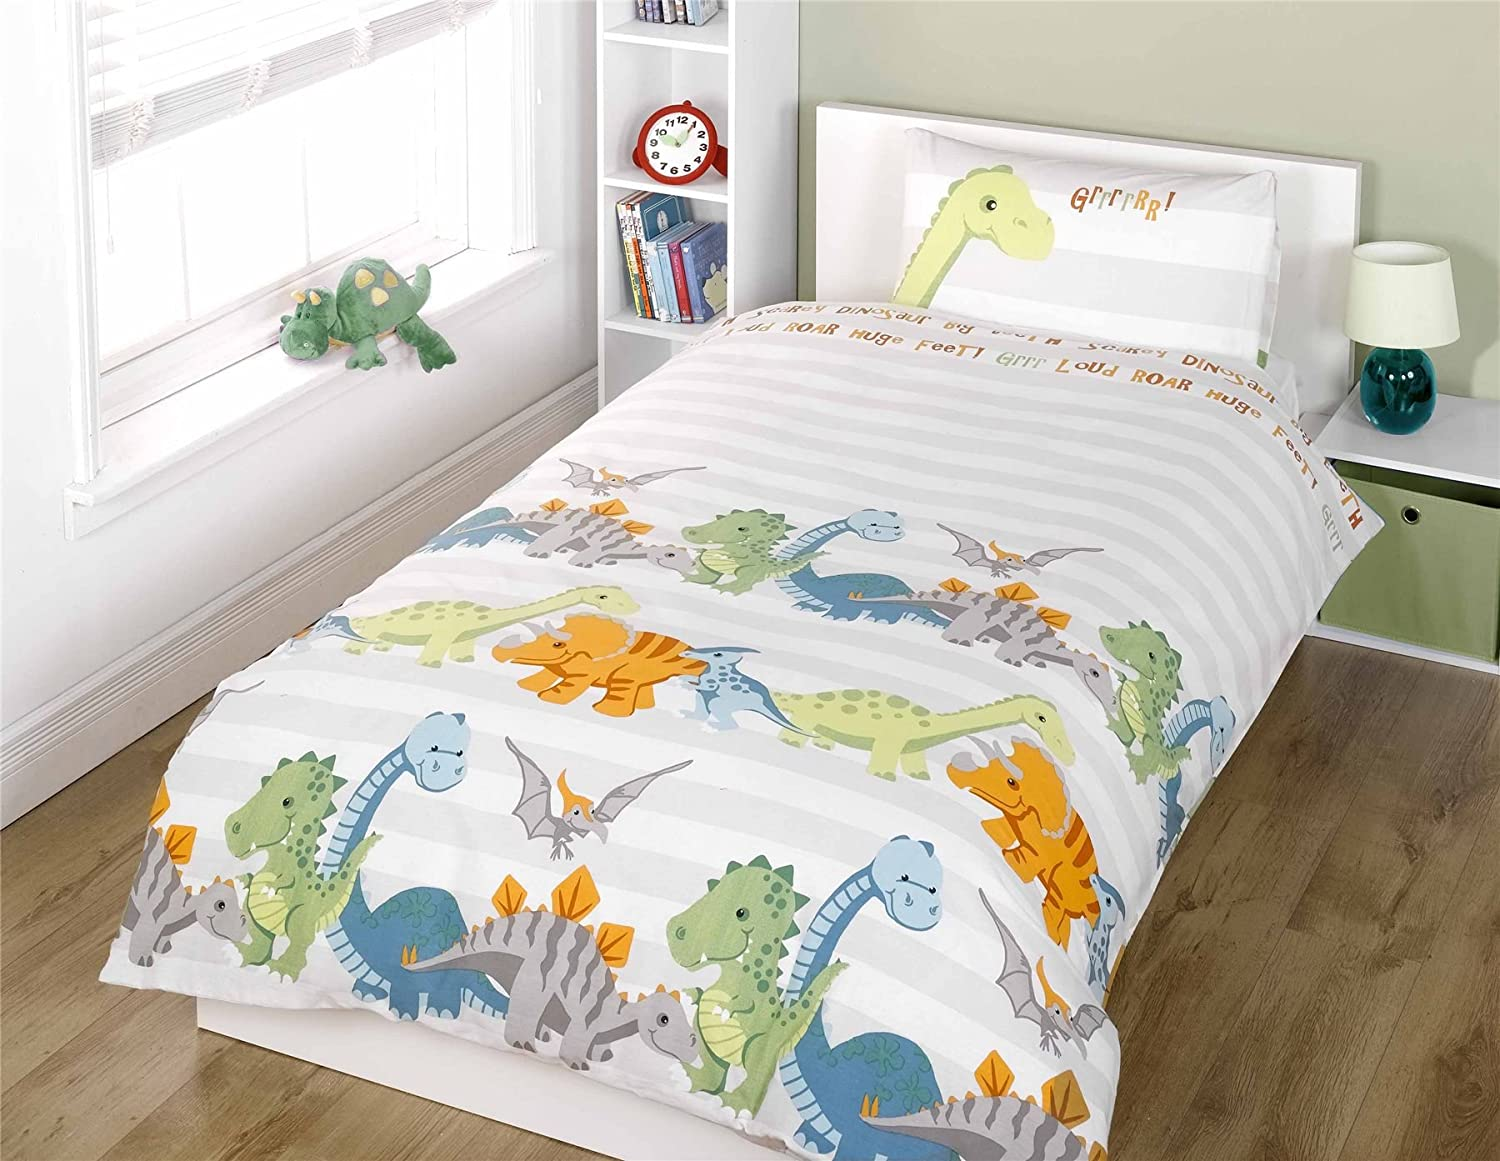 Dinosaurs Natural Junior Duvet Cover and Pillowcase Set: Amazon.co ... : single bed quilt cover size - Adamdwight.com